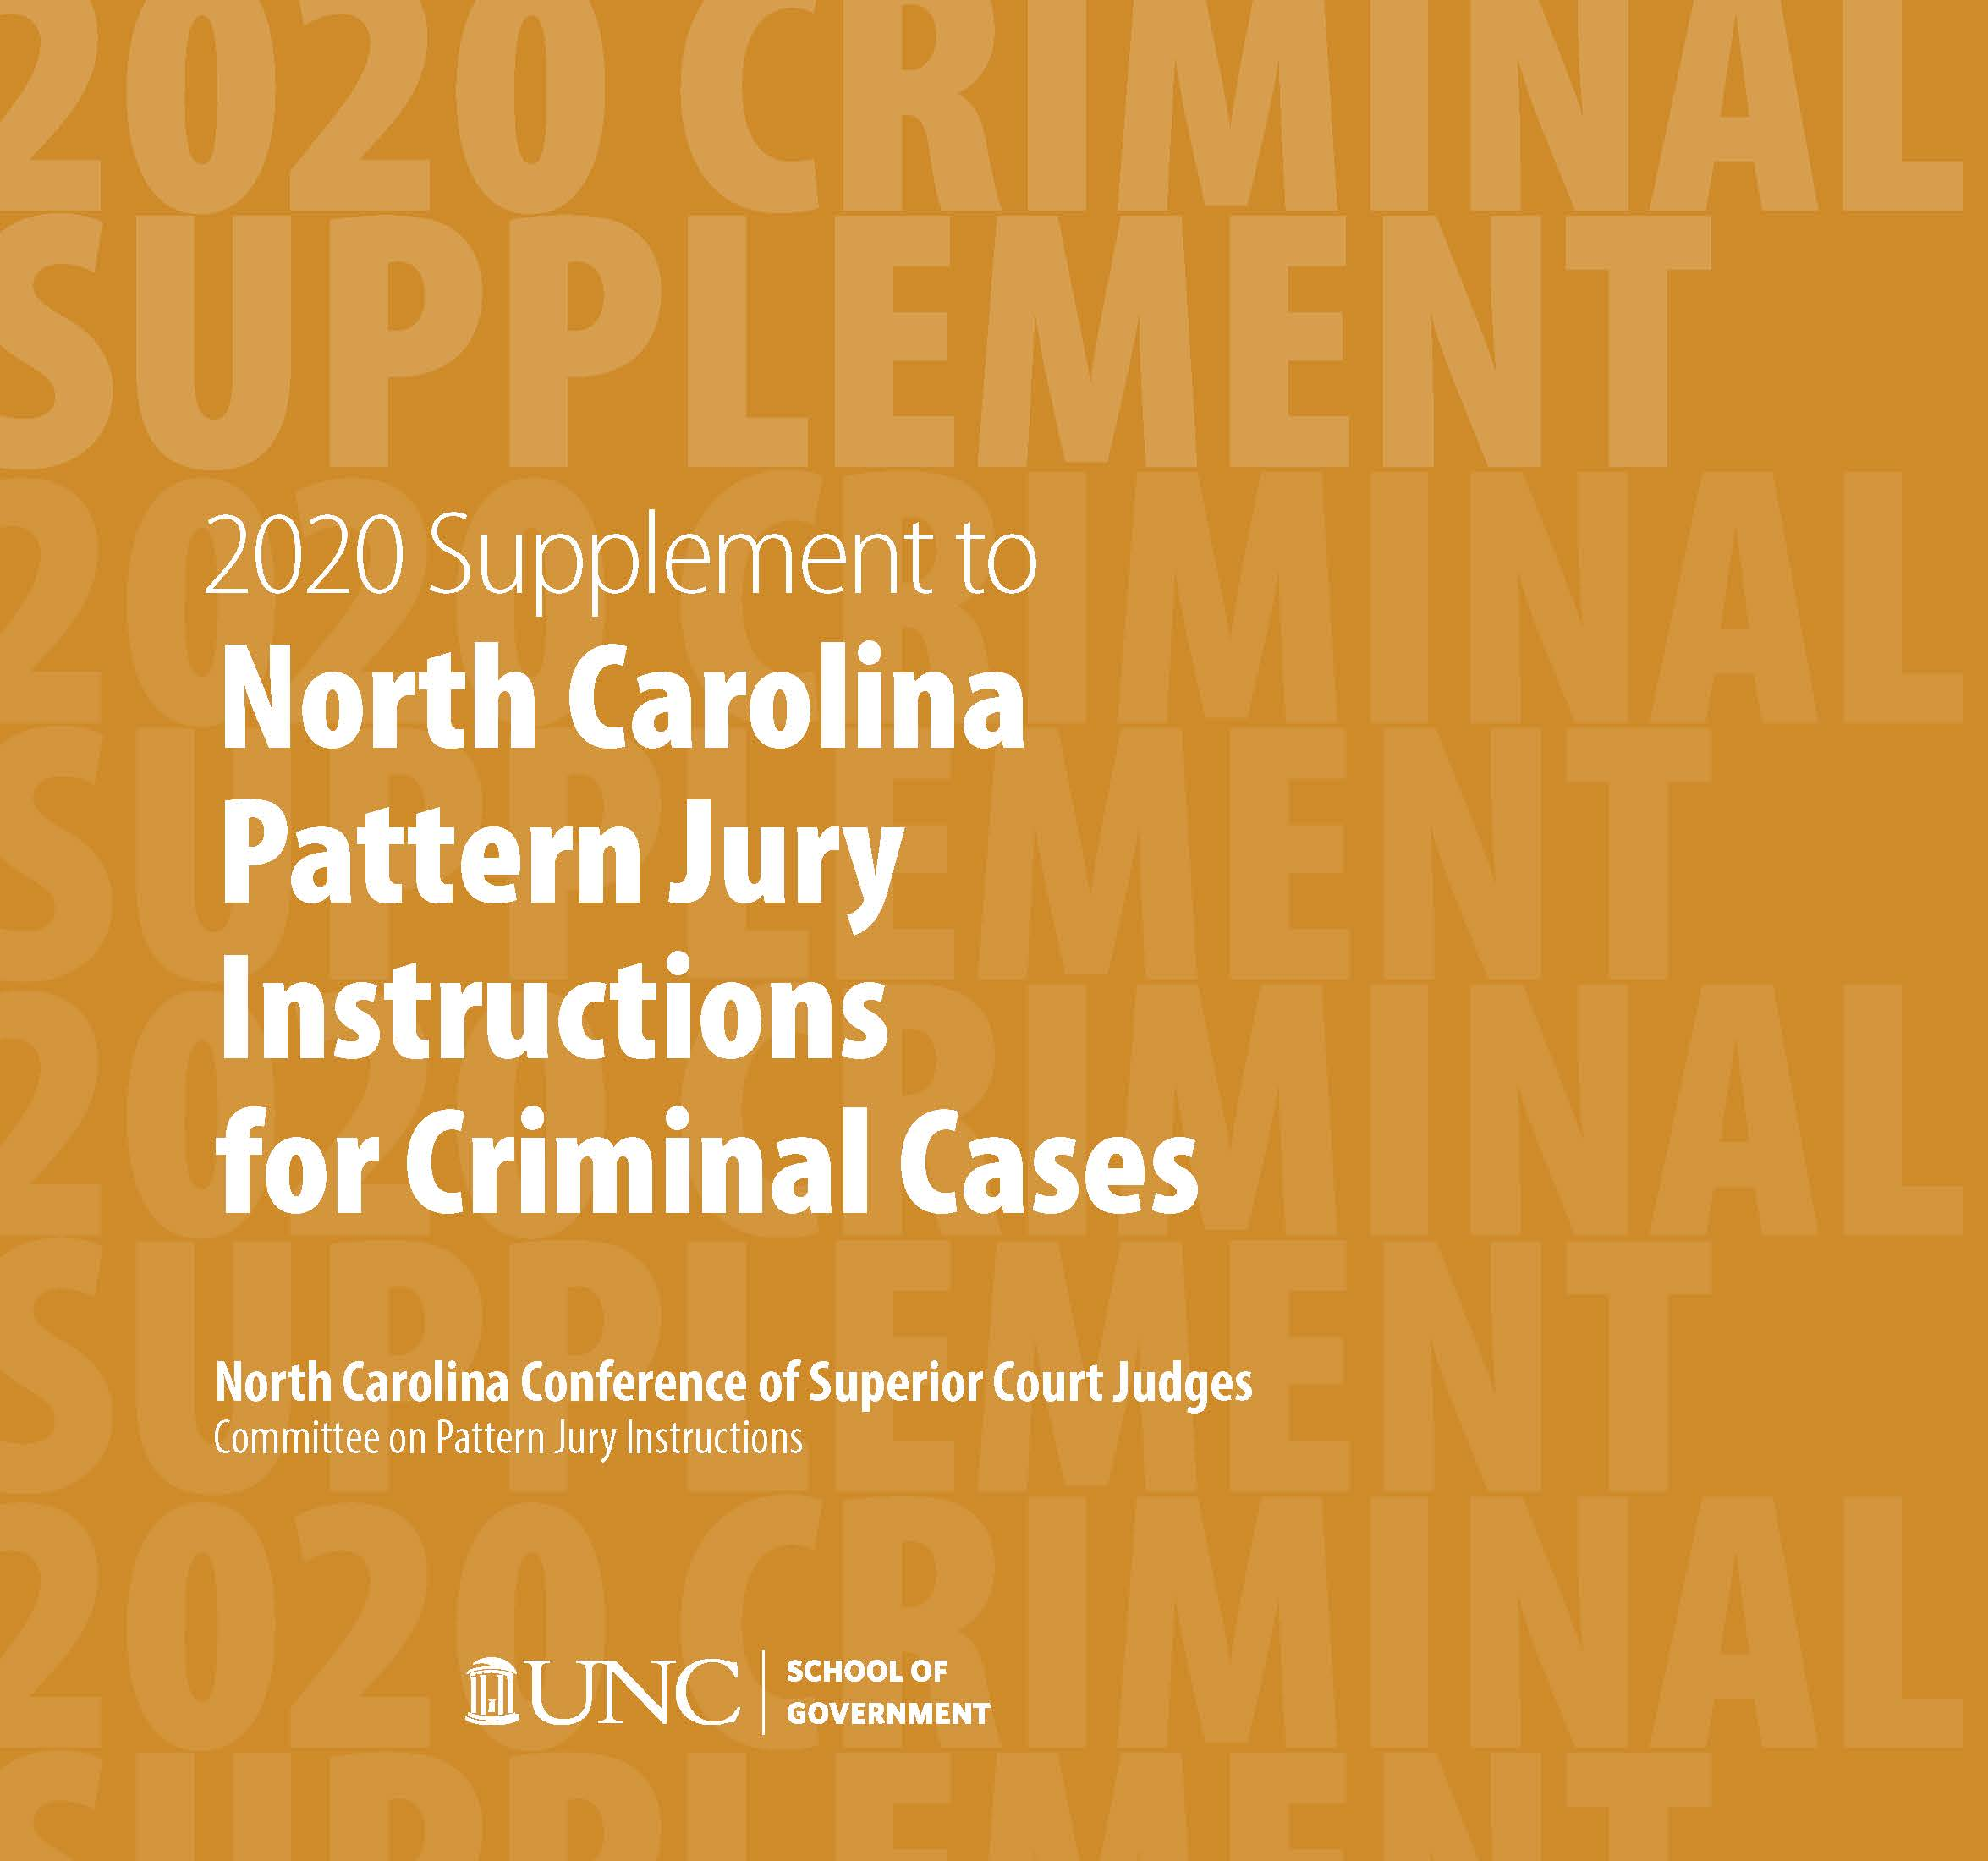 Cover image for June 2020 Supplement to North Carolina Pattern Jury Instructions for Criminal Cases